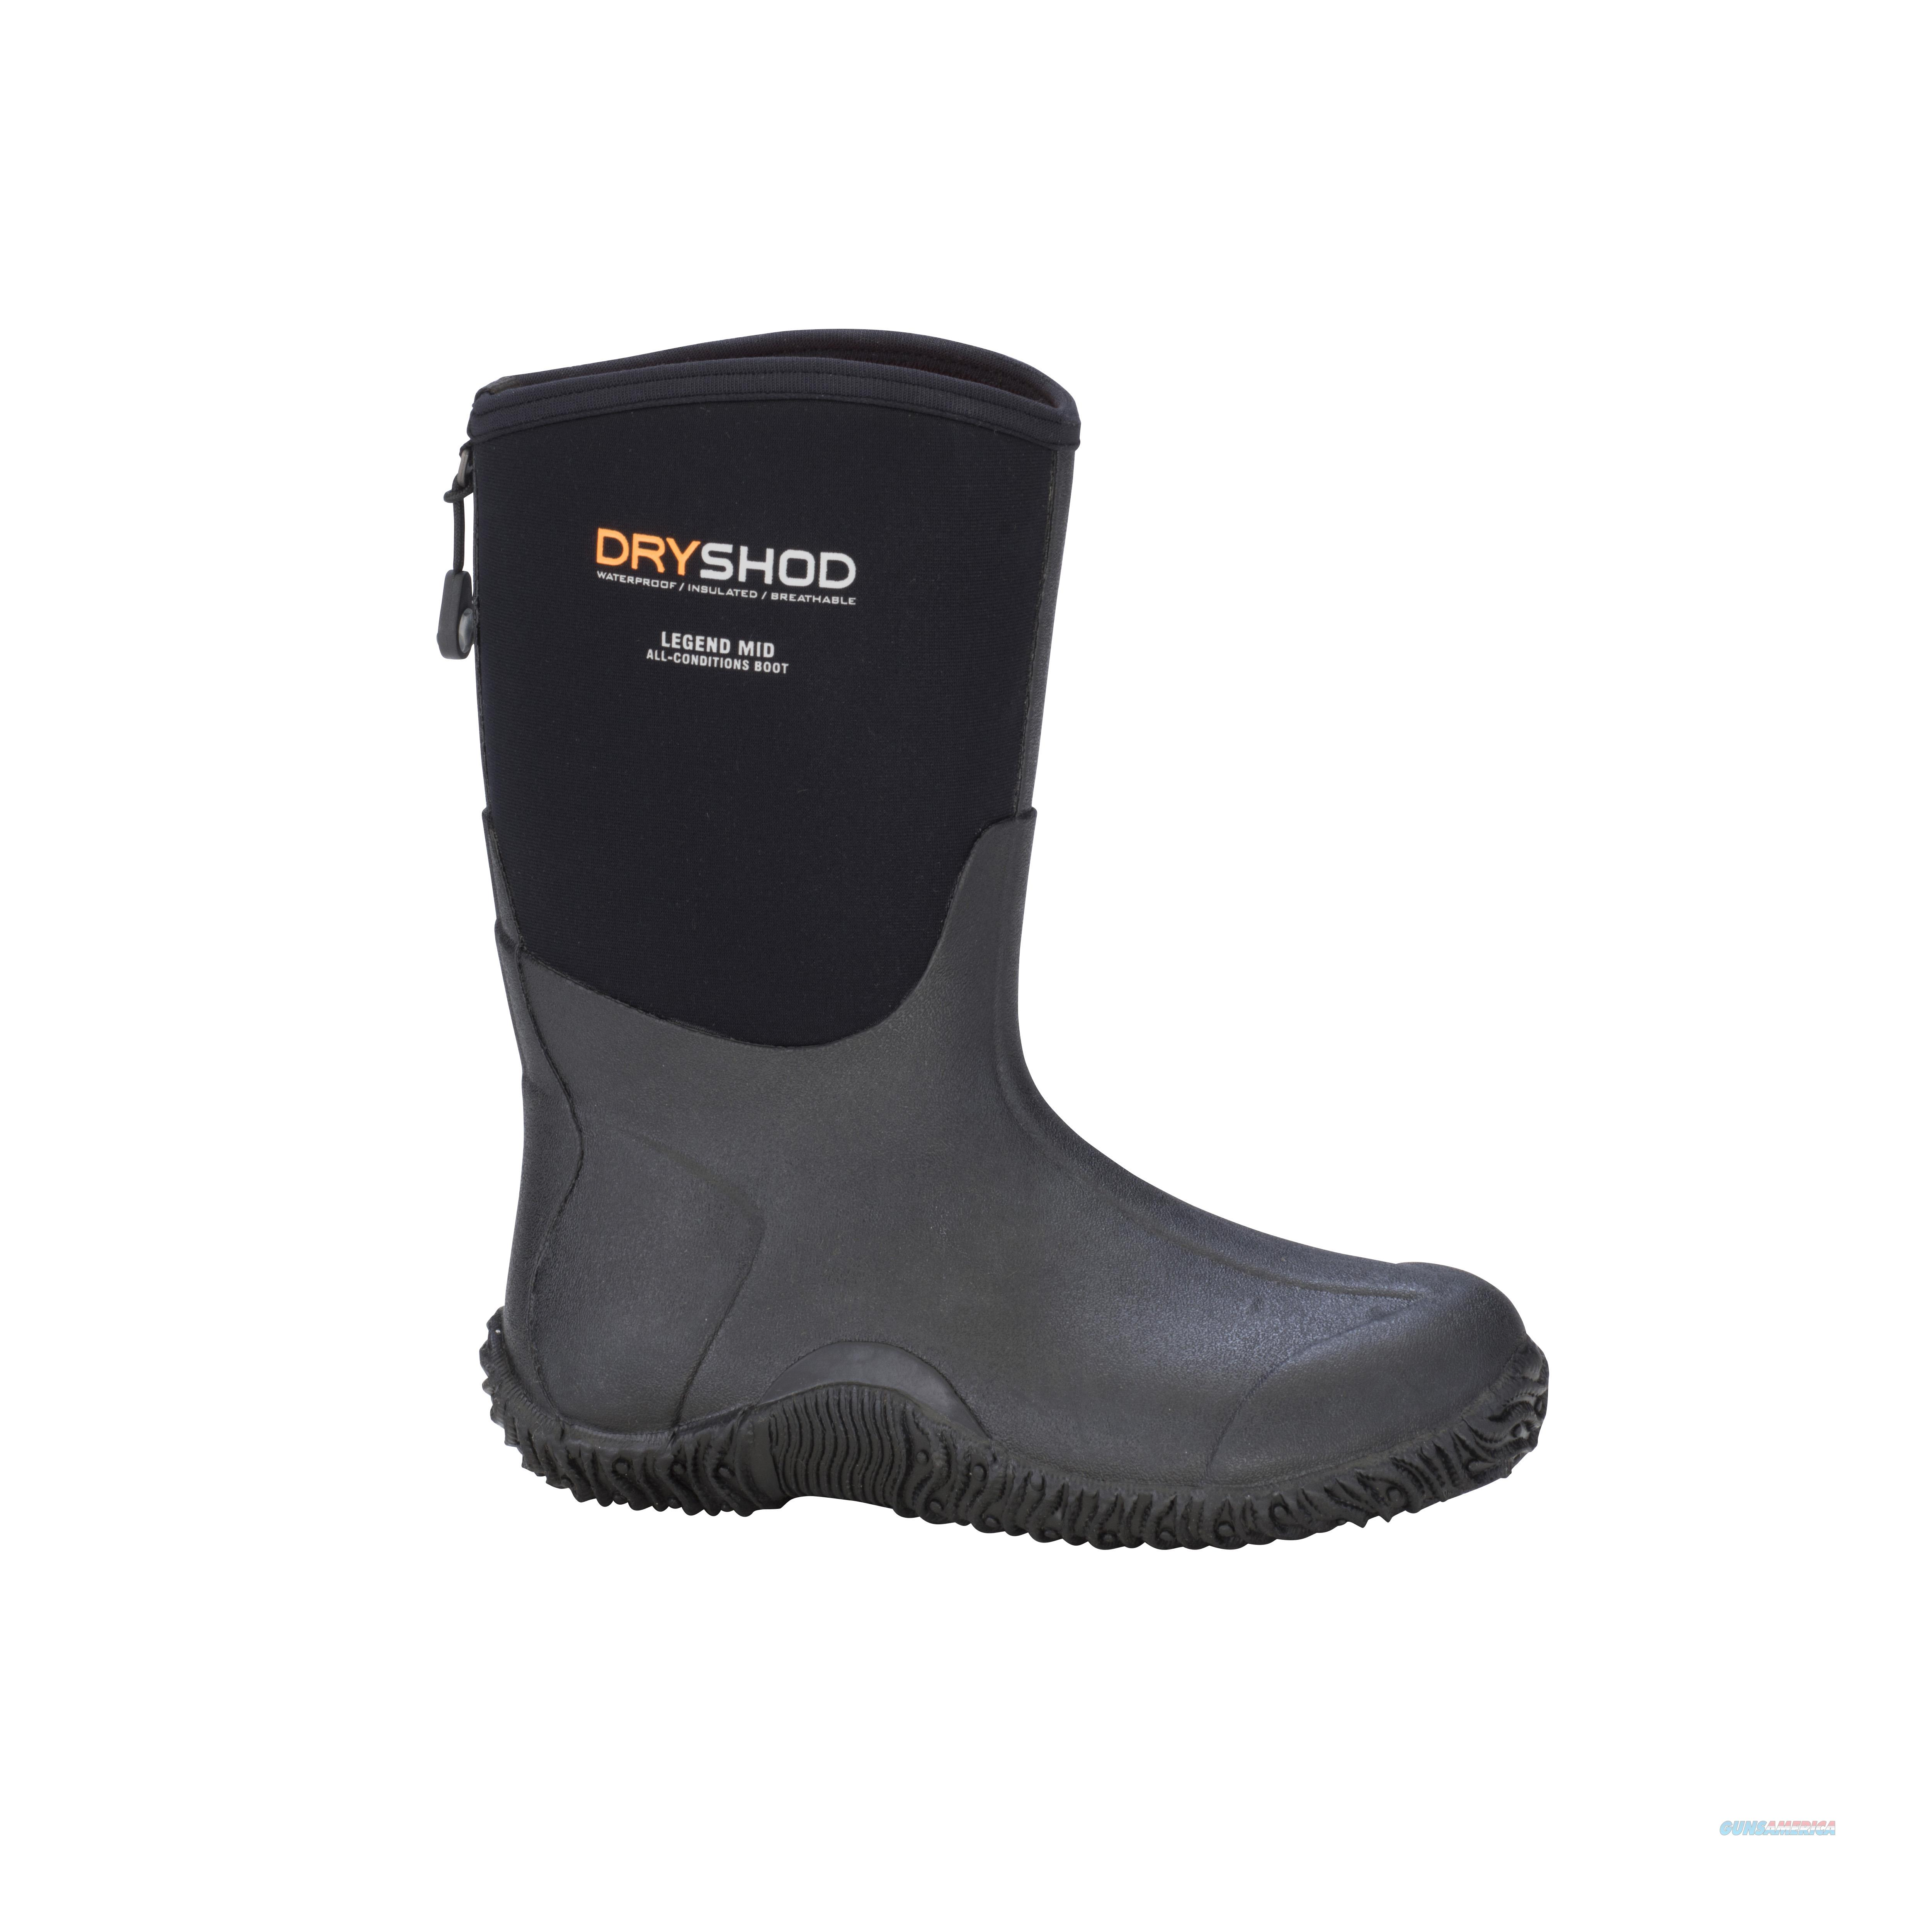 Dryshod Legend Mid Cut Boot Size 10  Non-Guns > Hunting Clothing and Equipment > Clothing > Camo Outerwear